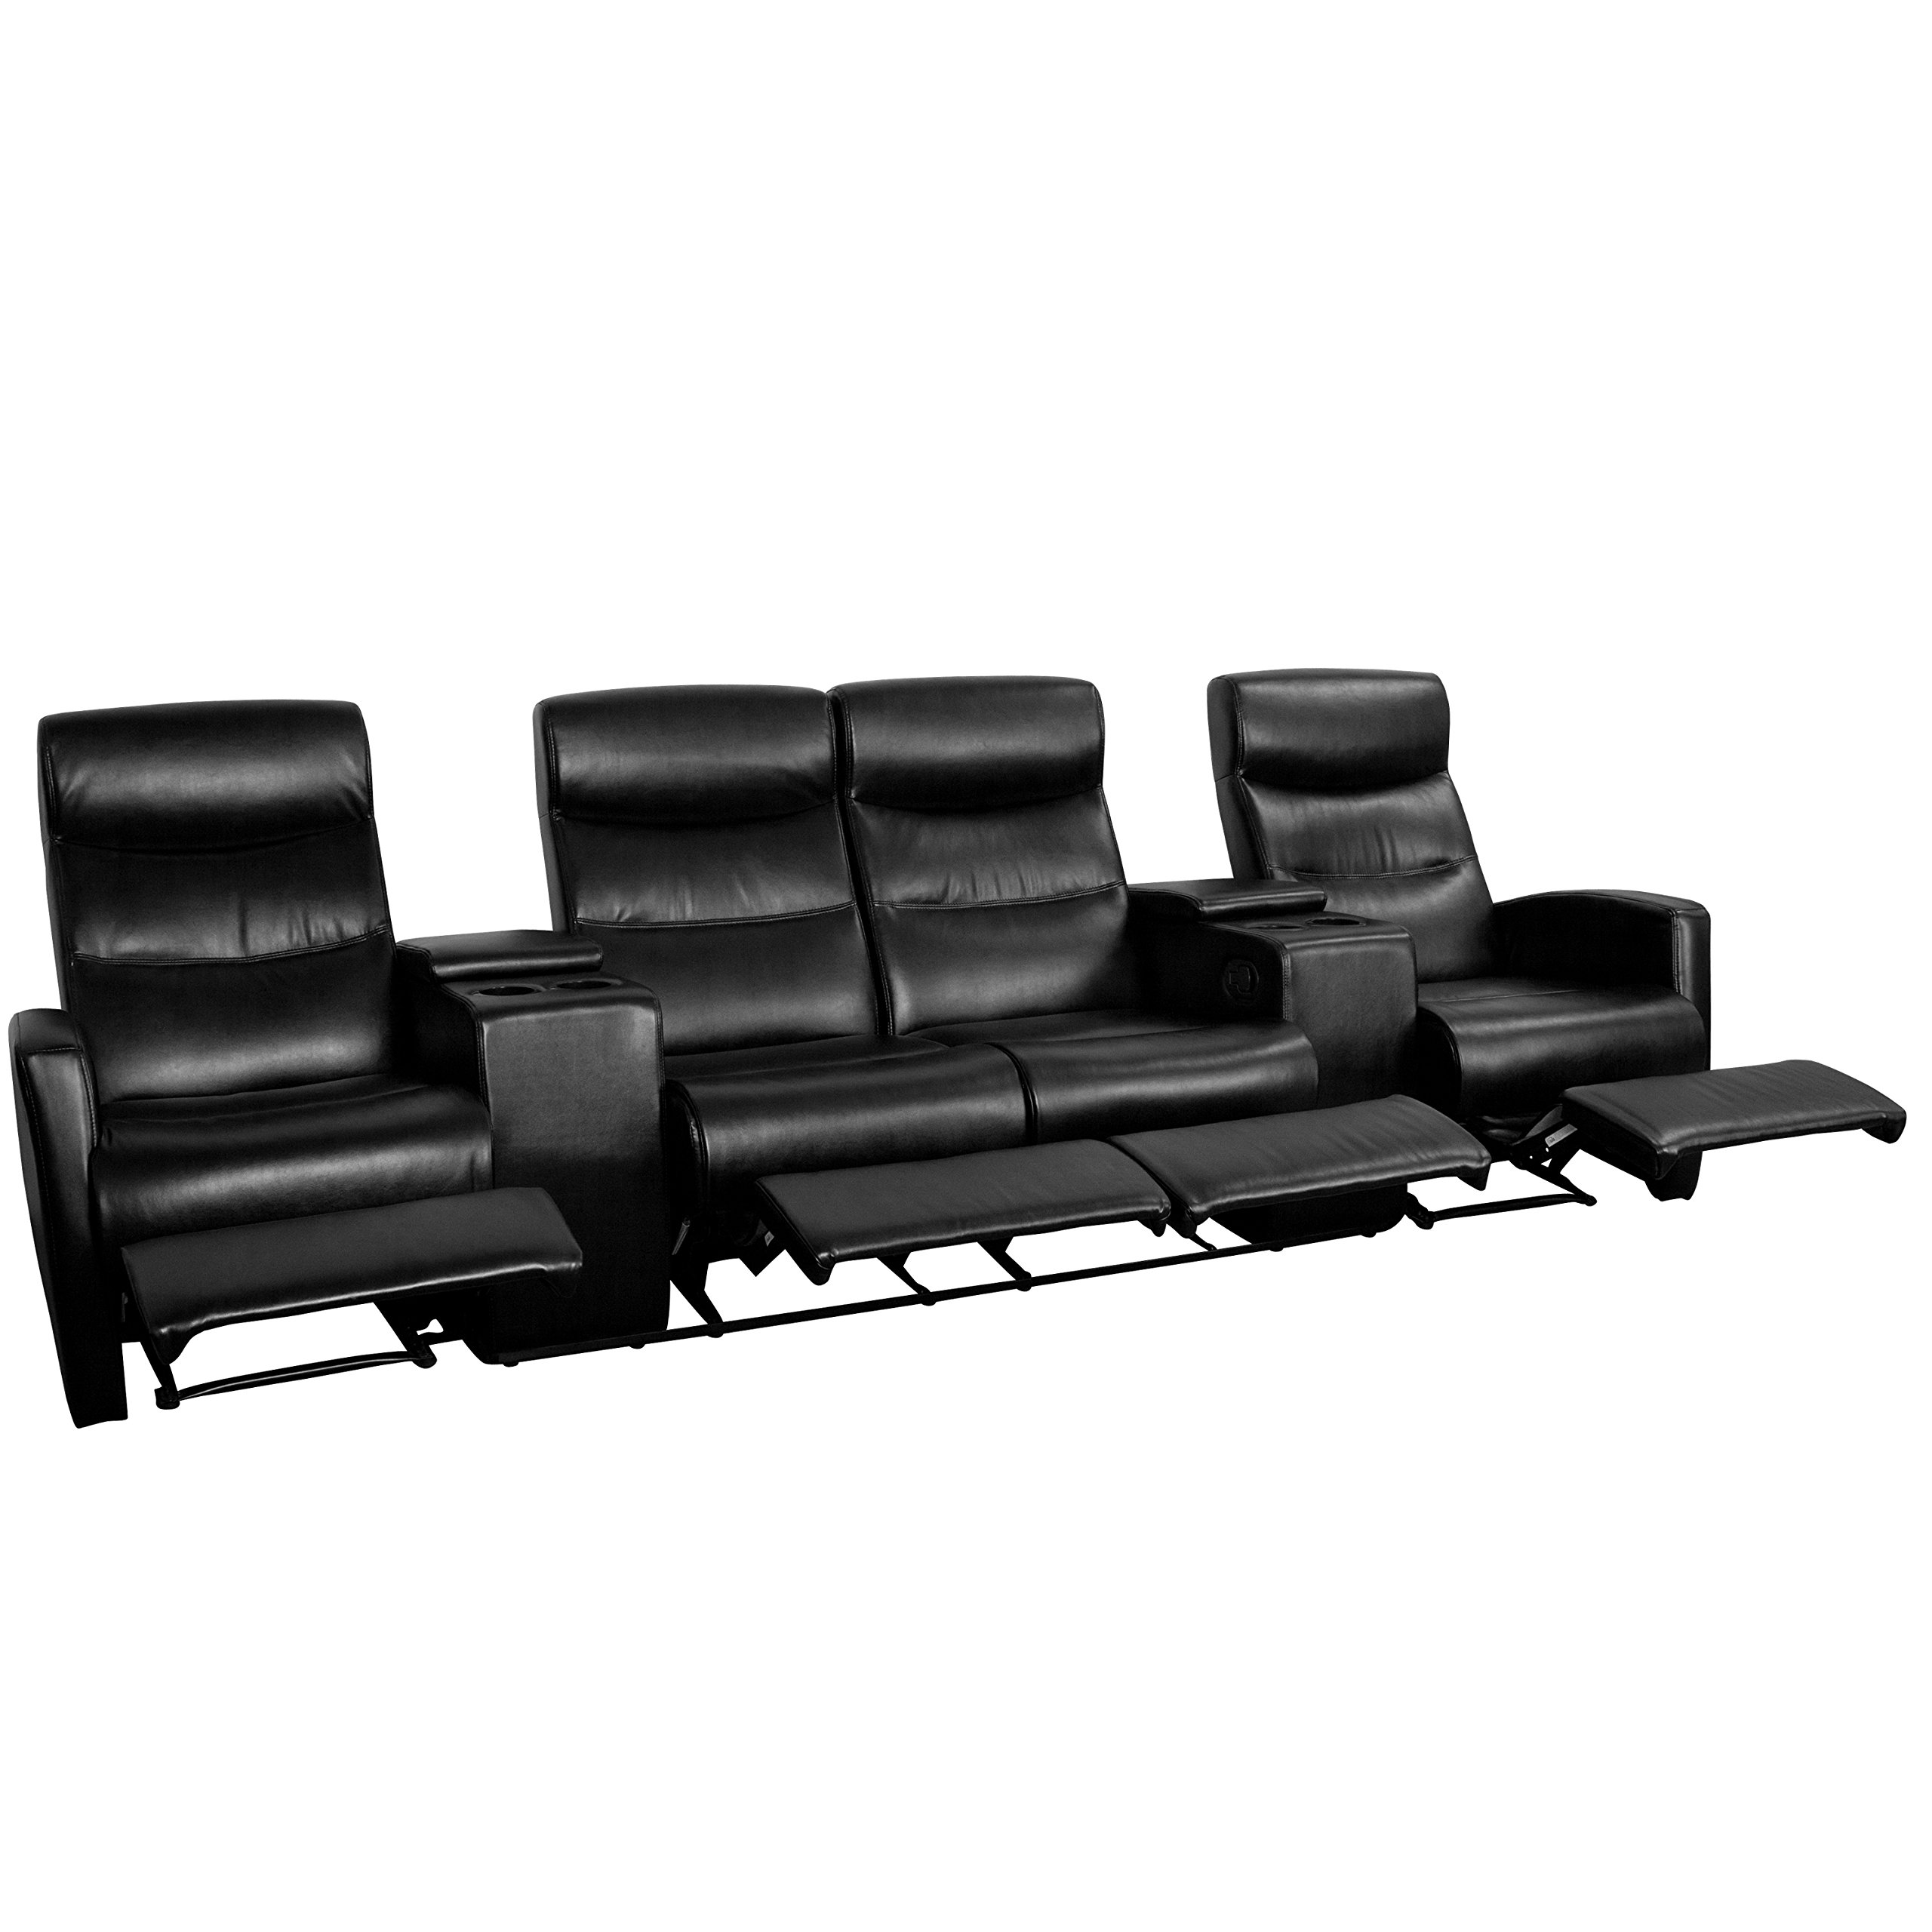 Winston Direct Cinema Series 4-Seat Reclining Black Leather Theater Seating Unit with Cup Holders